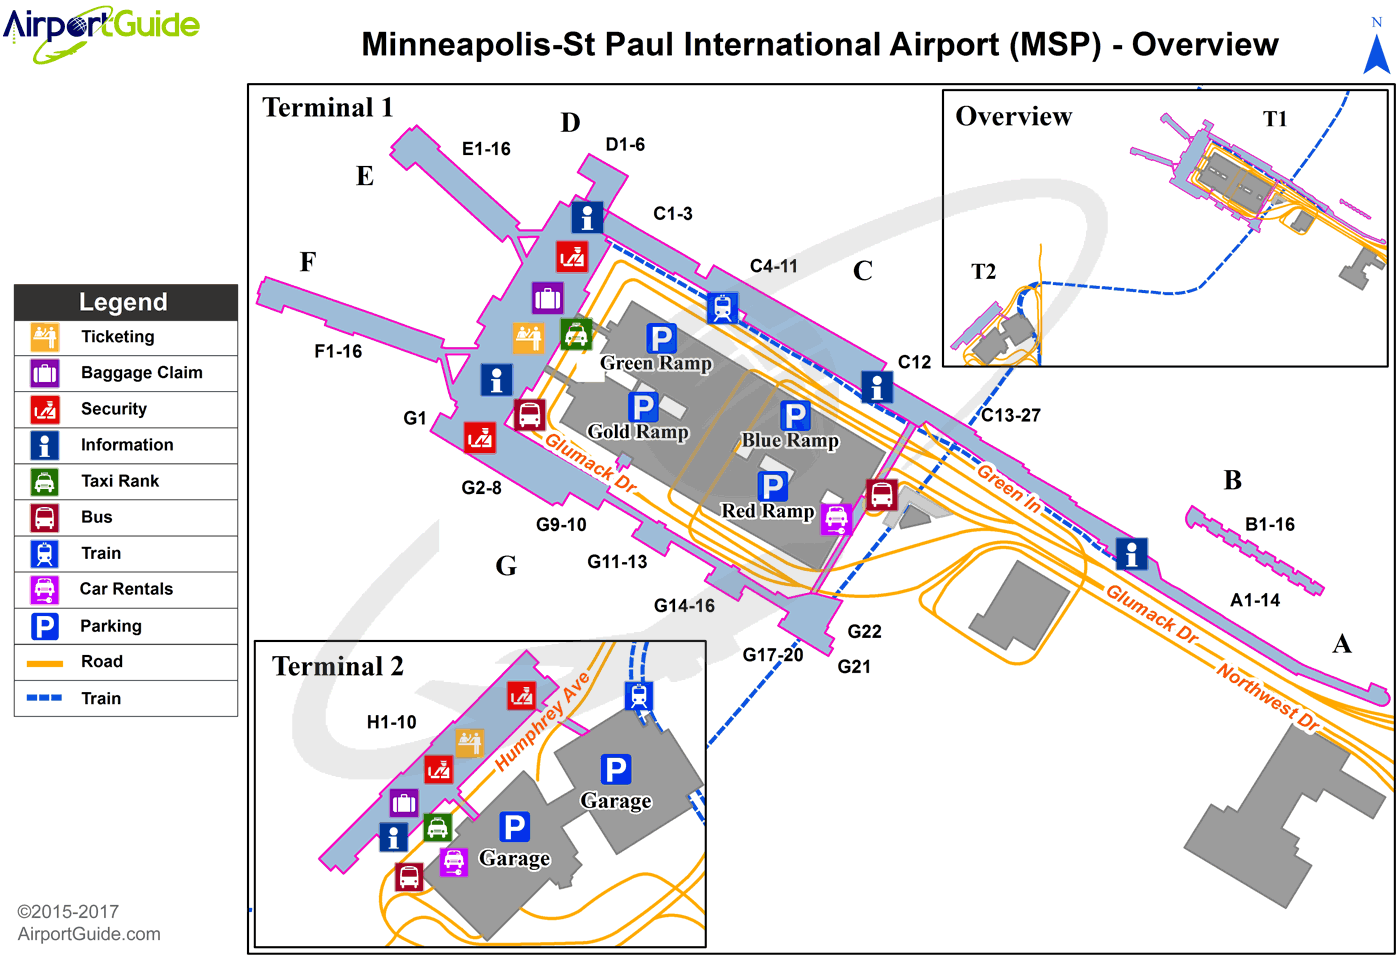 Minneapolis Airport Terminal Map Minneapolis   Minneapolis St Paul International/Wold Chamberlain  Minneapolis Airport Terminal Map